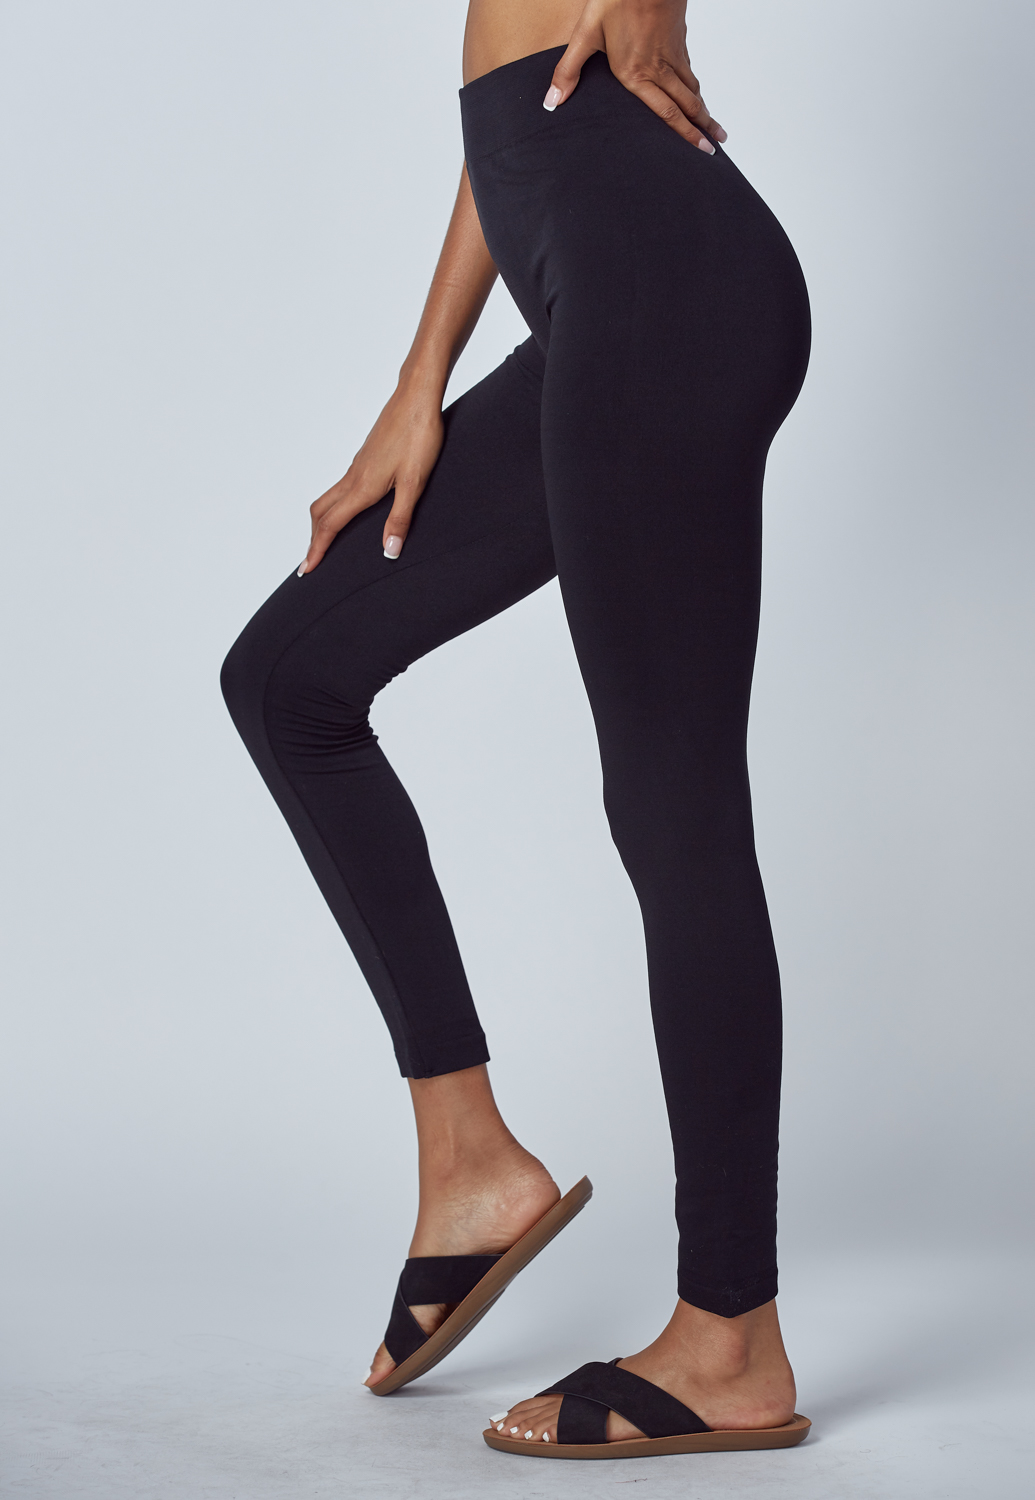 Spanx High Waisted Legging Pants